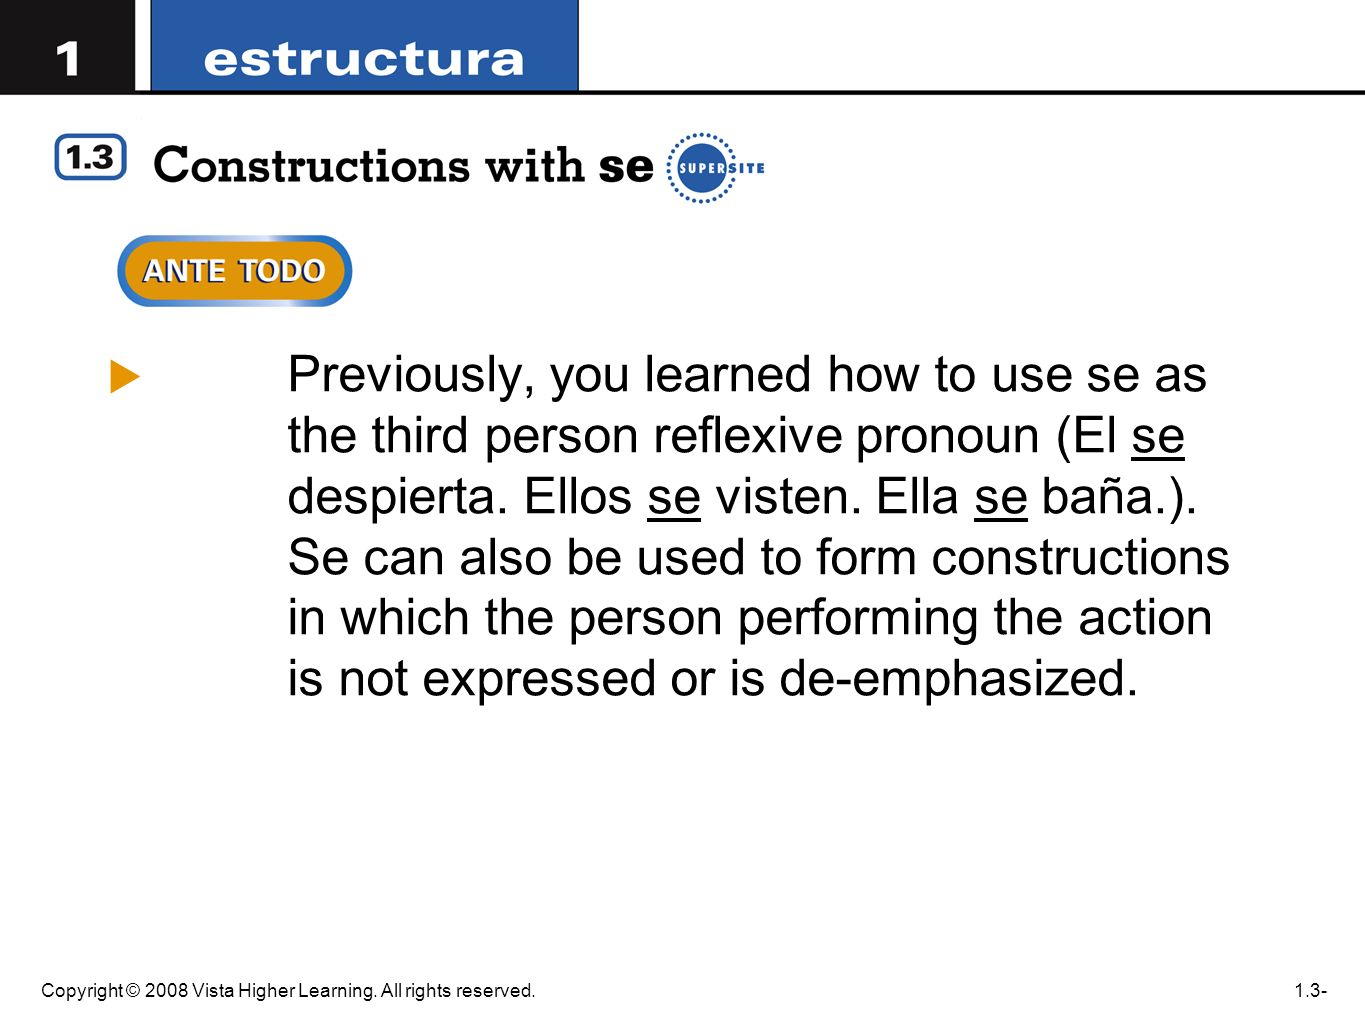 Previously, you learned how to use se as the third person reflexive pronoun (El se despierta. Ellos se visten. Ella se baña.). Se can also be used to form constructions in which the person performing the action is not expressed or is de-emphasized.